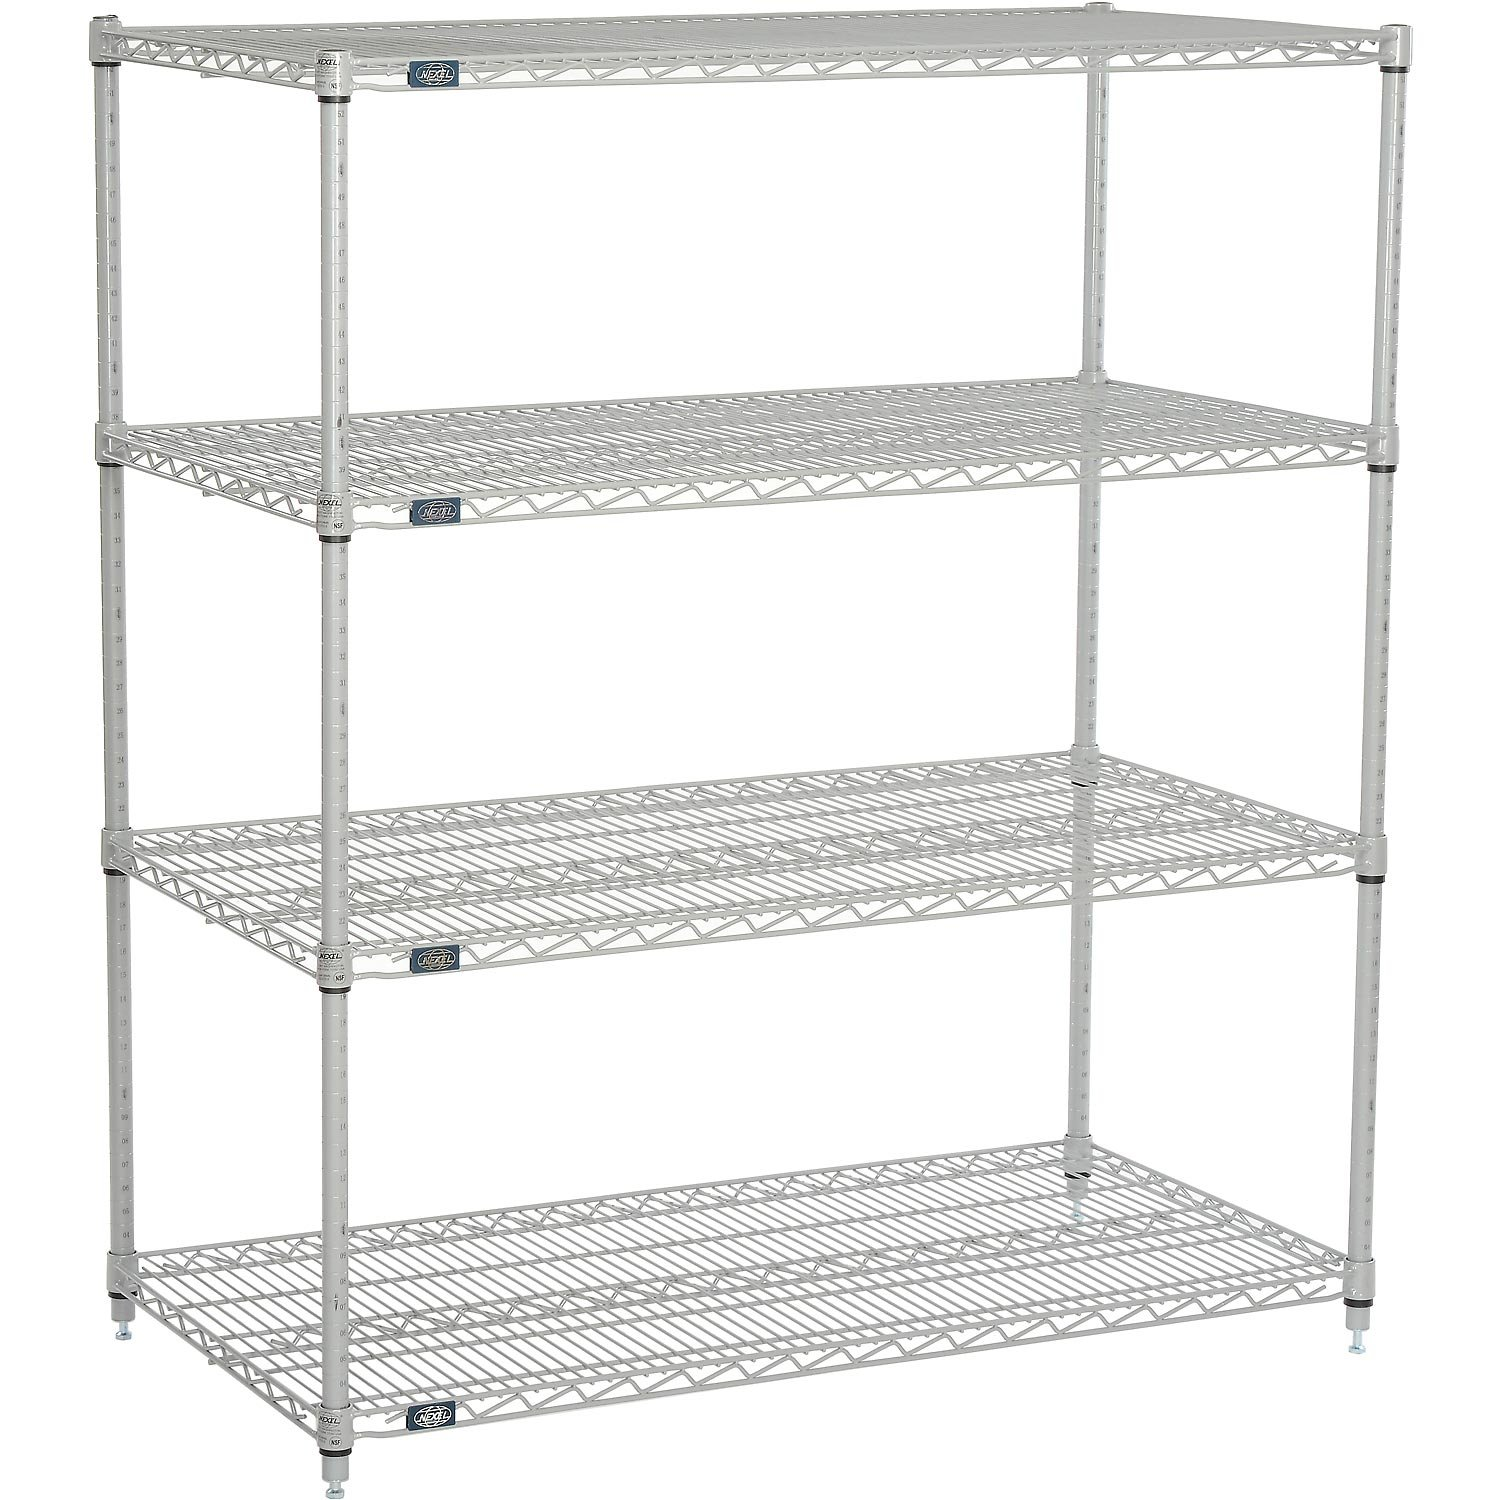 Nexelate Wire Shelving Starter Unit, Silver Epoxy, 48''W x 24''D x 54''H by Nexel